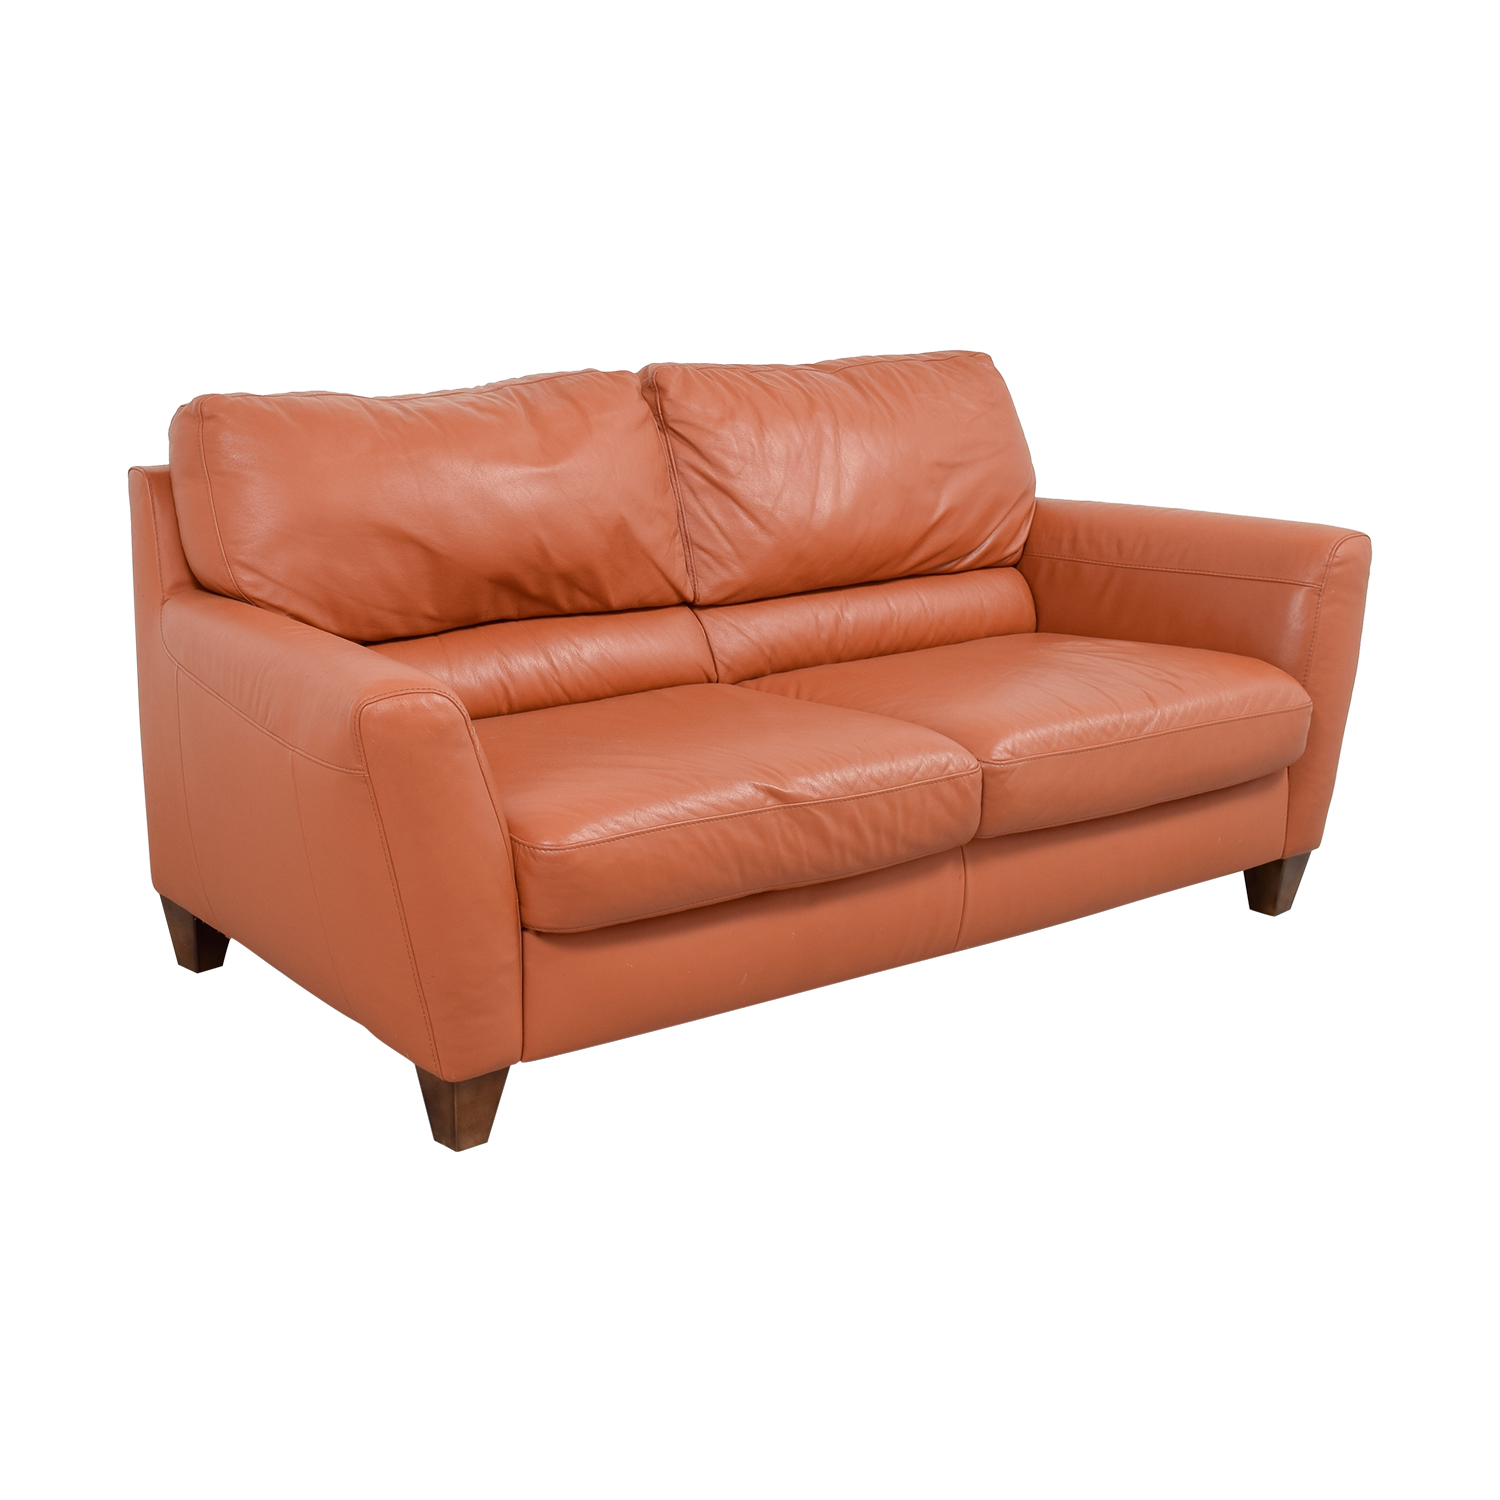 76 off natuzzi natuzzi amalfi burnt orange leather sofa sofas - Sofas natuzzi ...